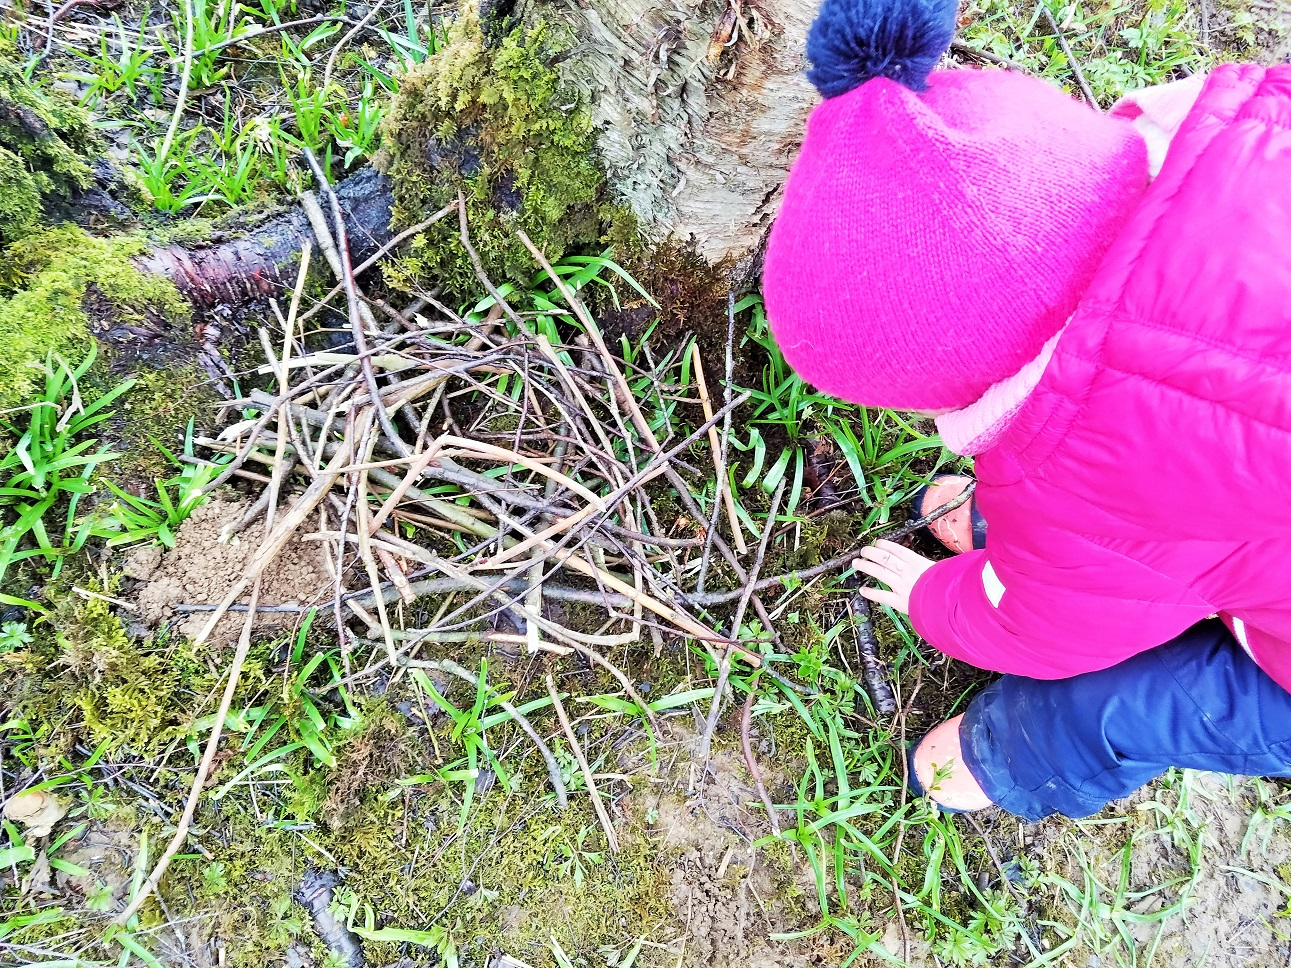 Building a nest of sticks - Forest School at the Yorkshire Dales National Park in Freeholders Wood